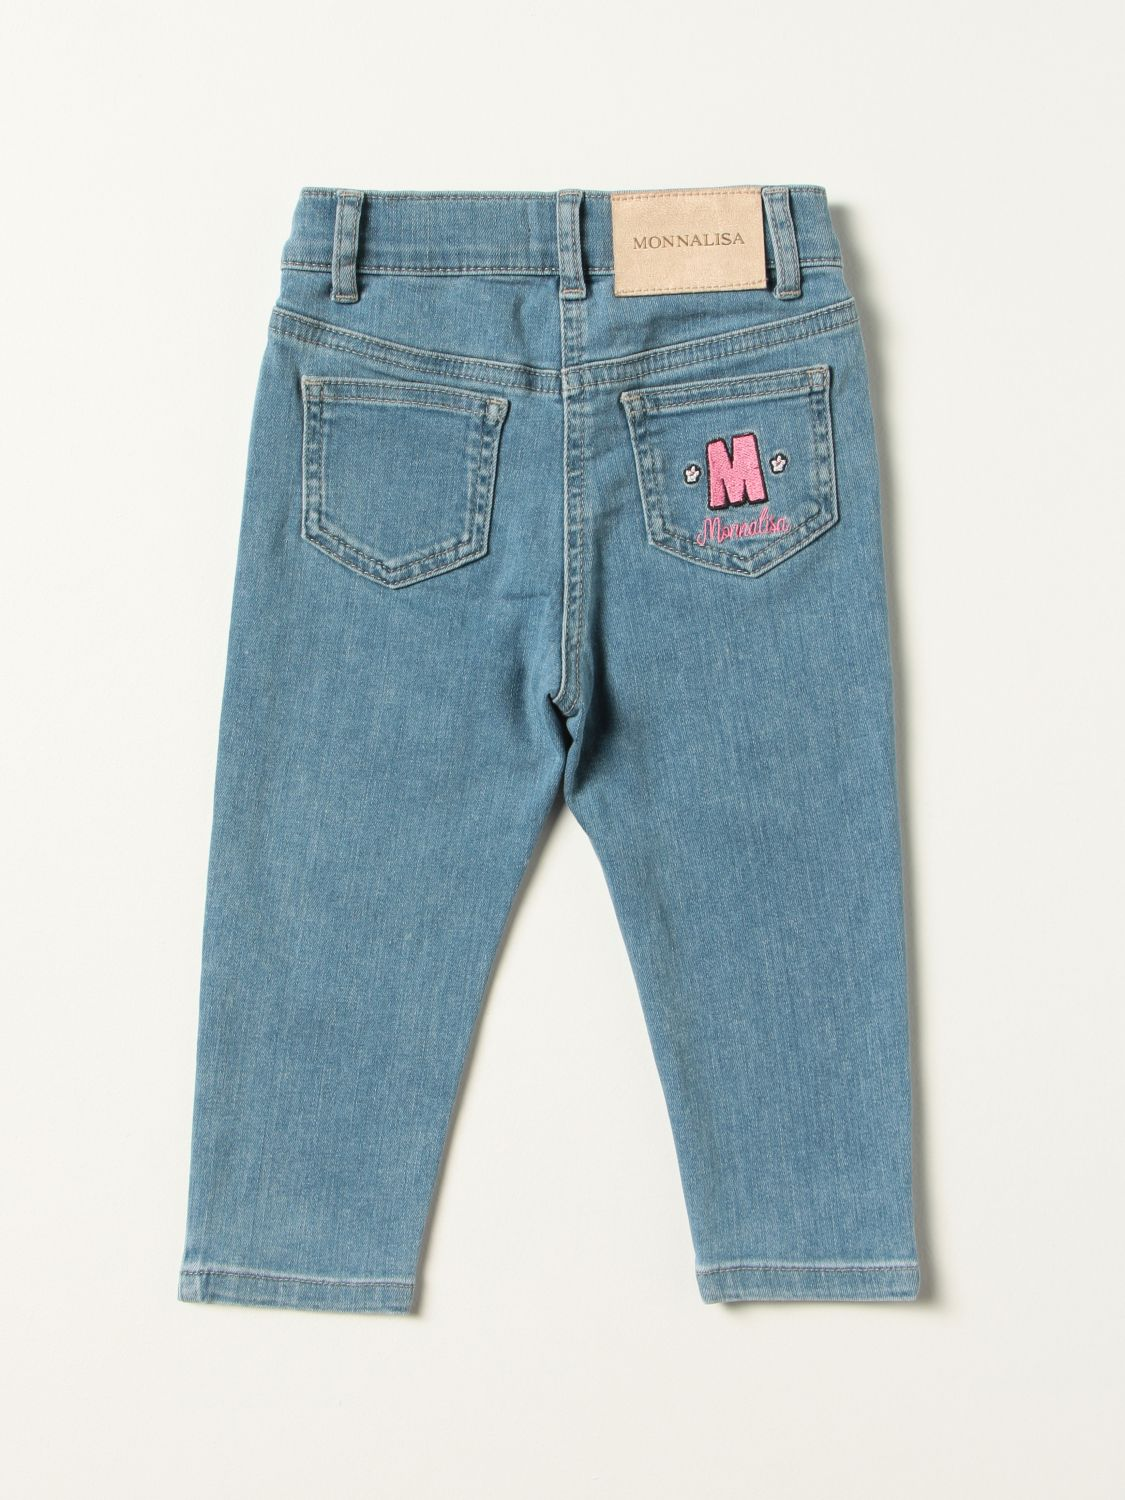 Jeans Monnalisa: Monnalisa power-puff-girl jeans with embroidery denim 2